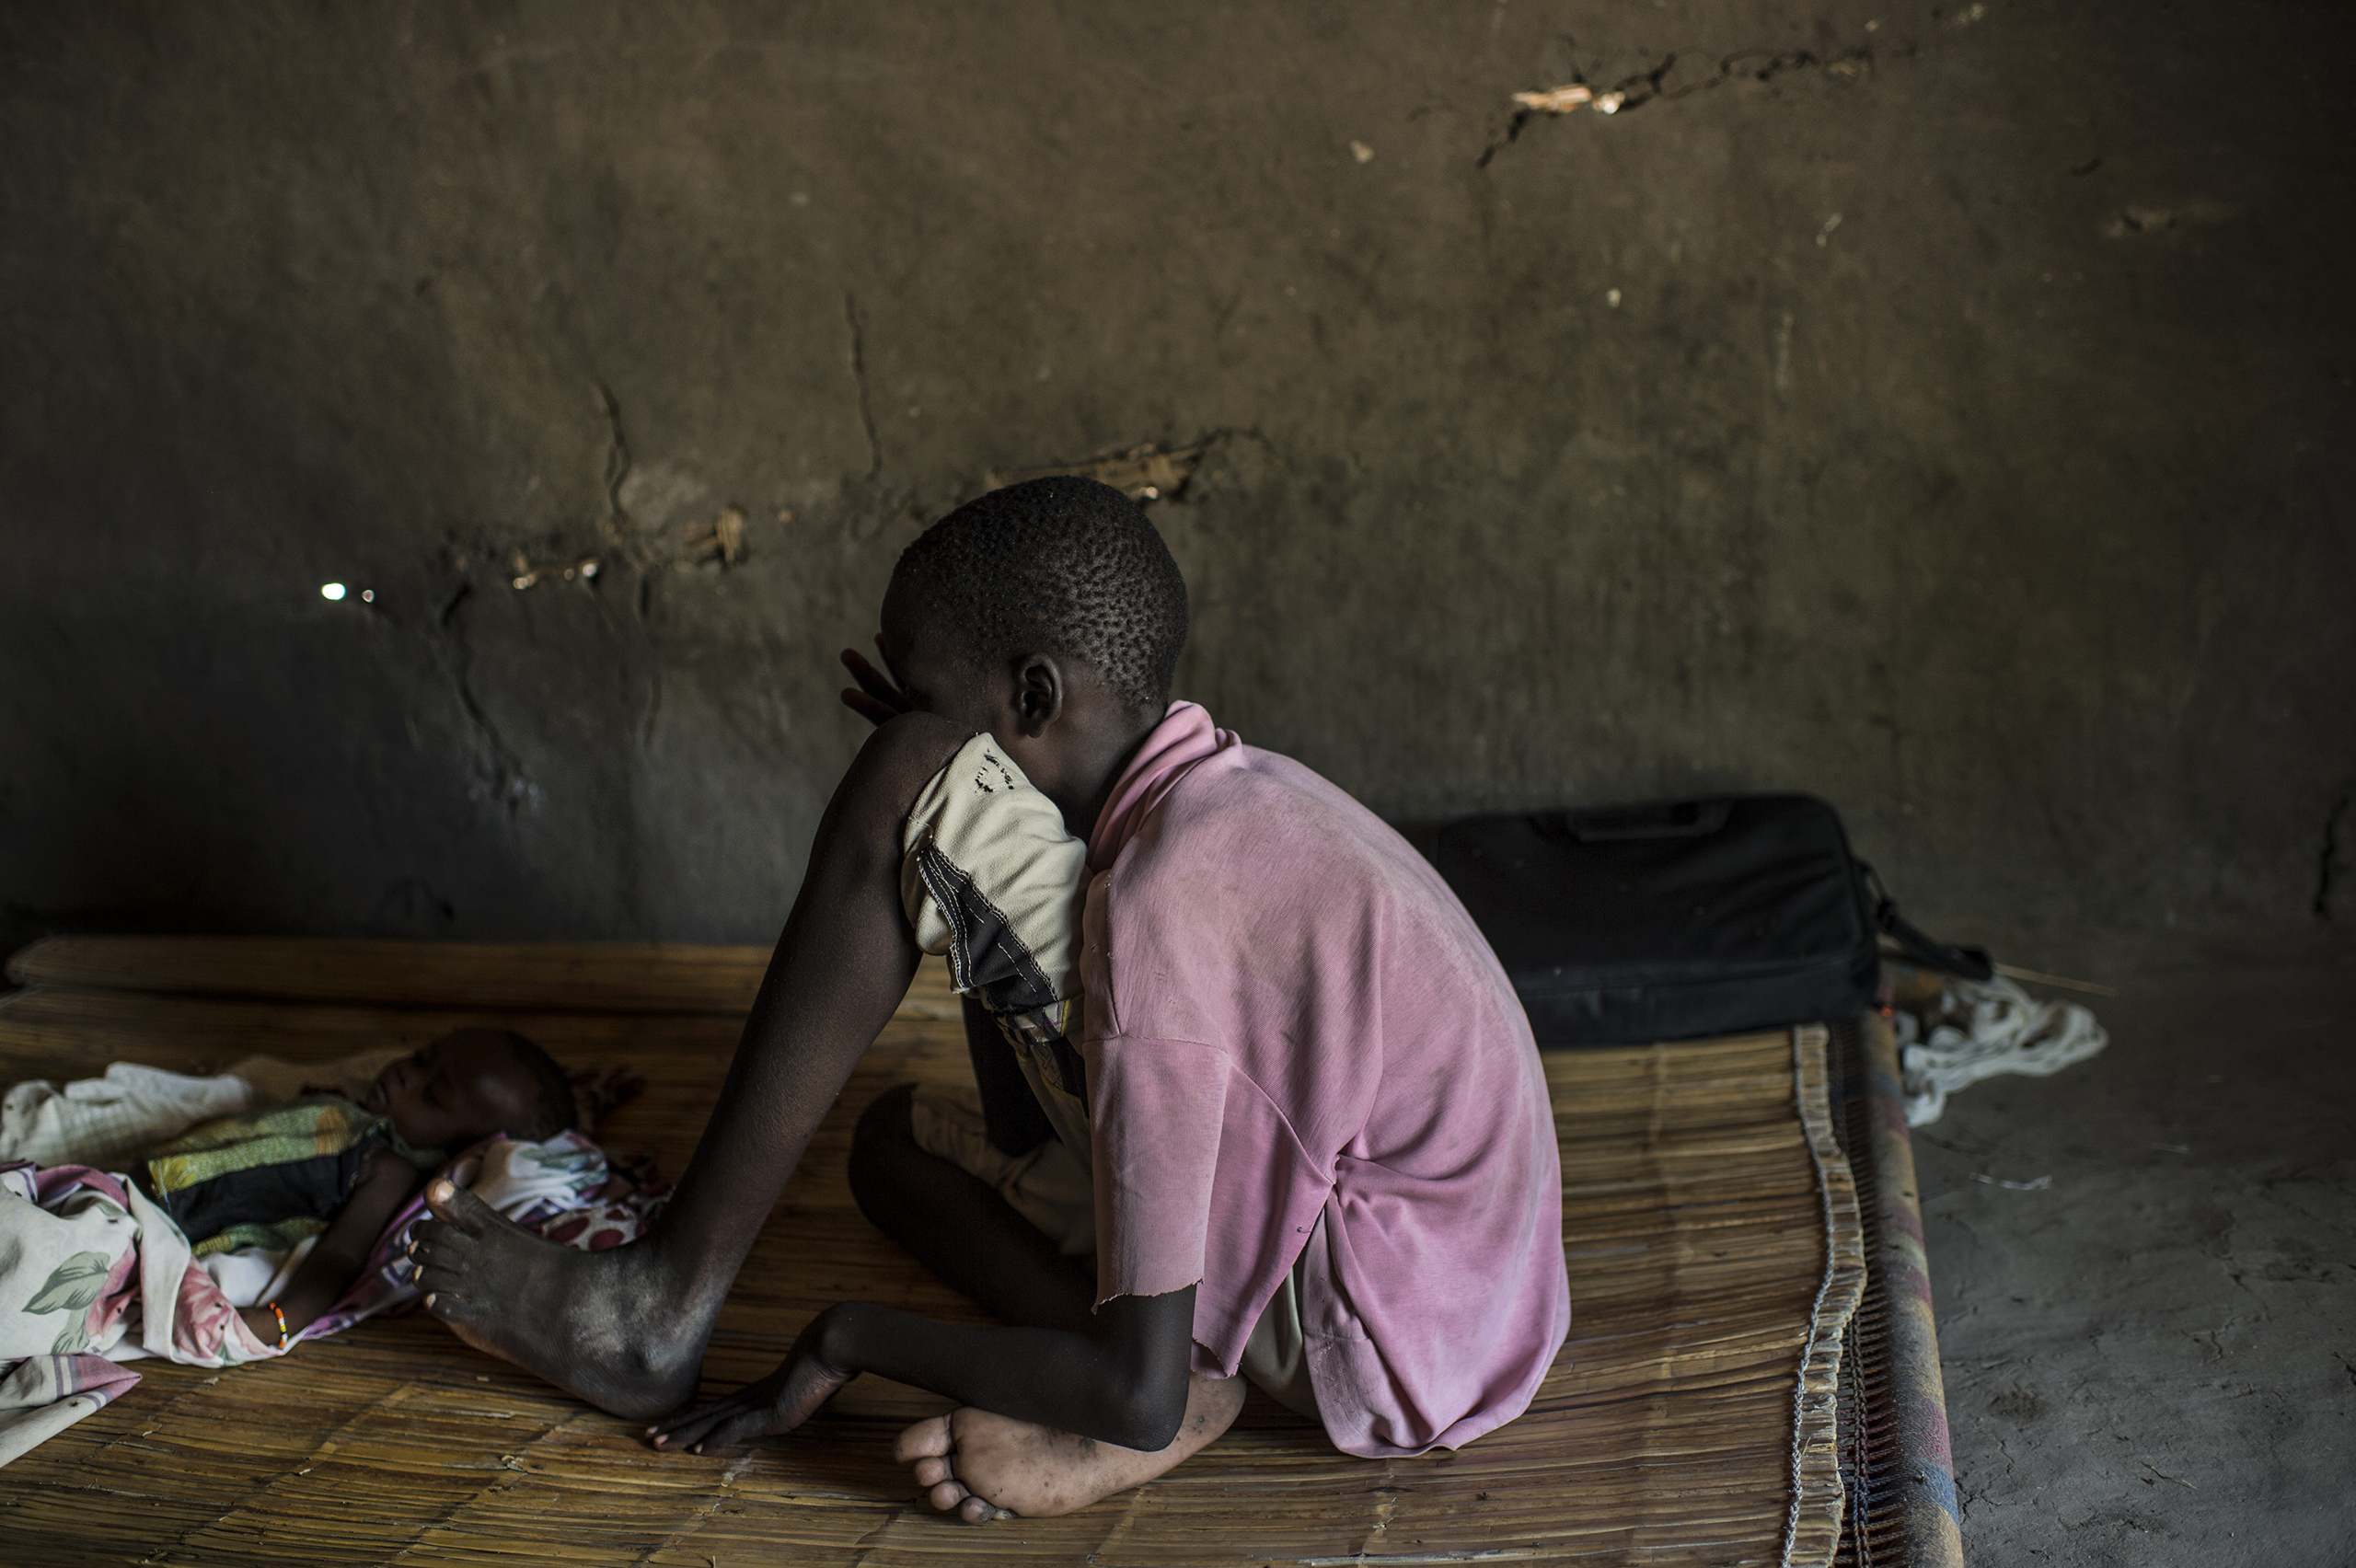 A South Sudanese boy in a safe house in Leer, in Unity State, South Sudan, March 19, 2016. He was the sole survivor of an October 2015 incident, during which government forces closed some 50 men in a shipping container for 36 hours until they suffocated.From  The Only One God Left Alive